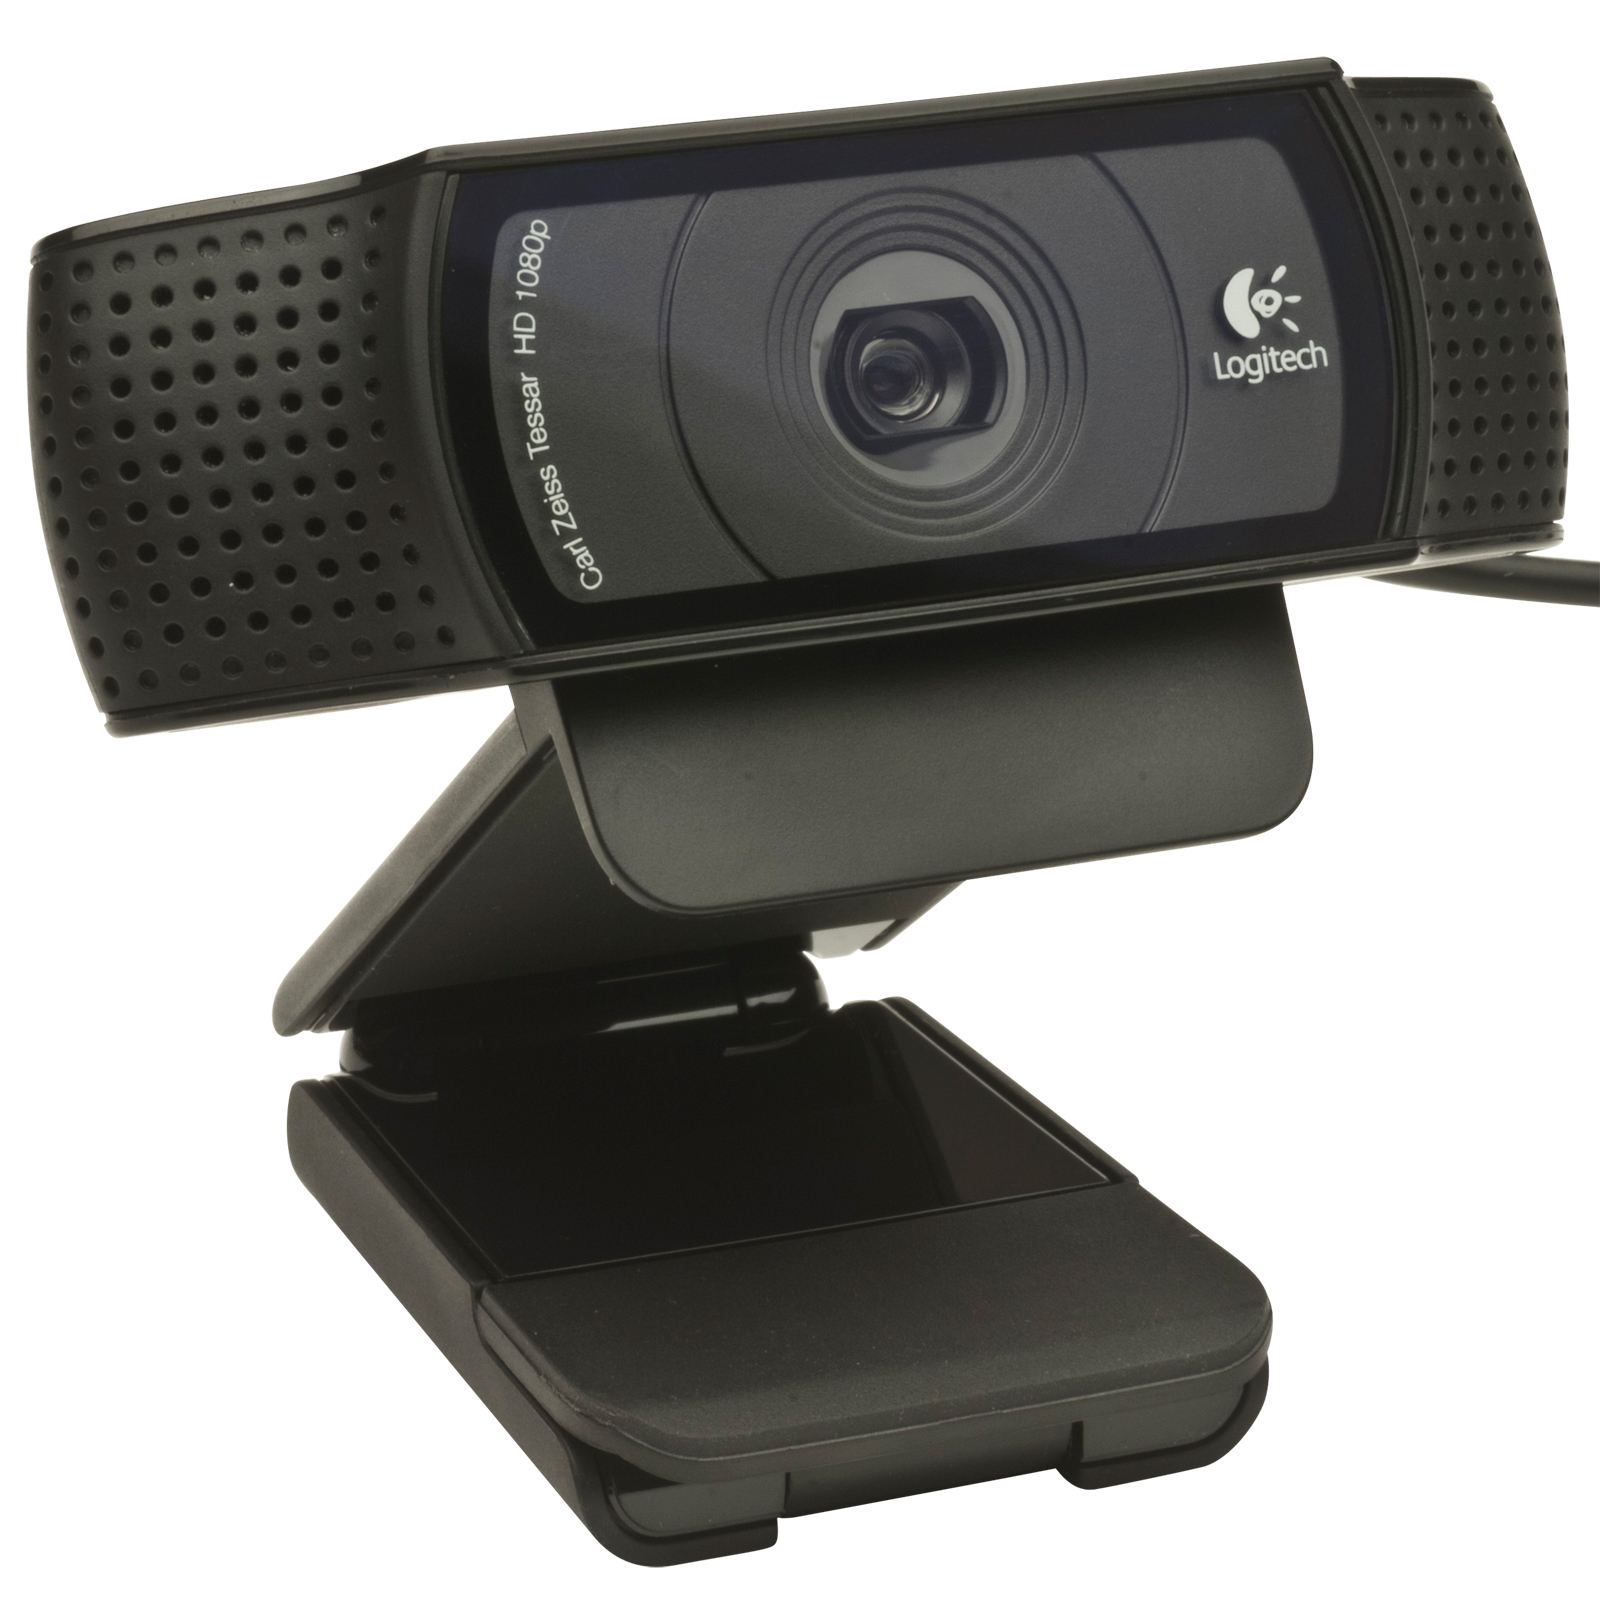 Digital Web Camera Logitech HD Pro WebCam C9201